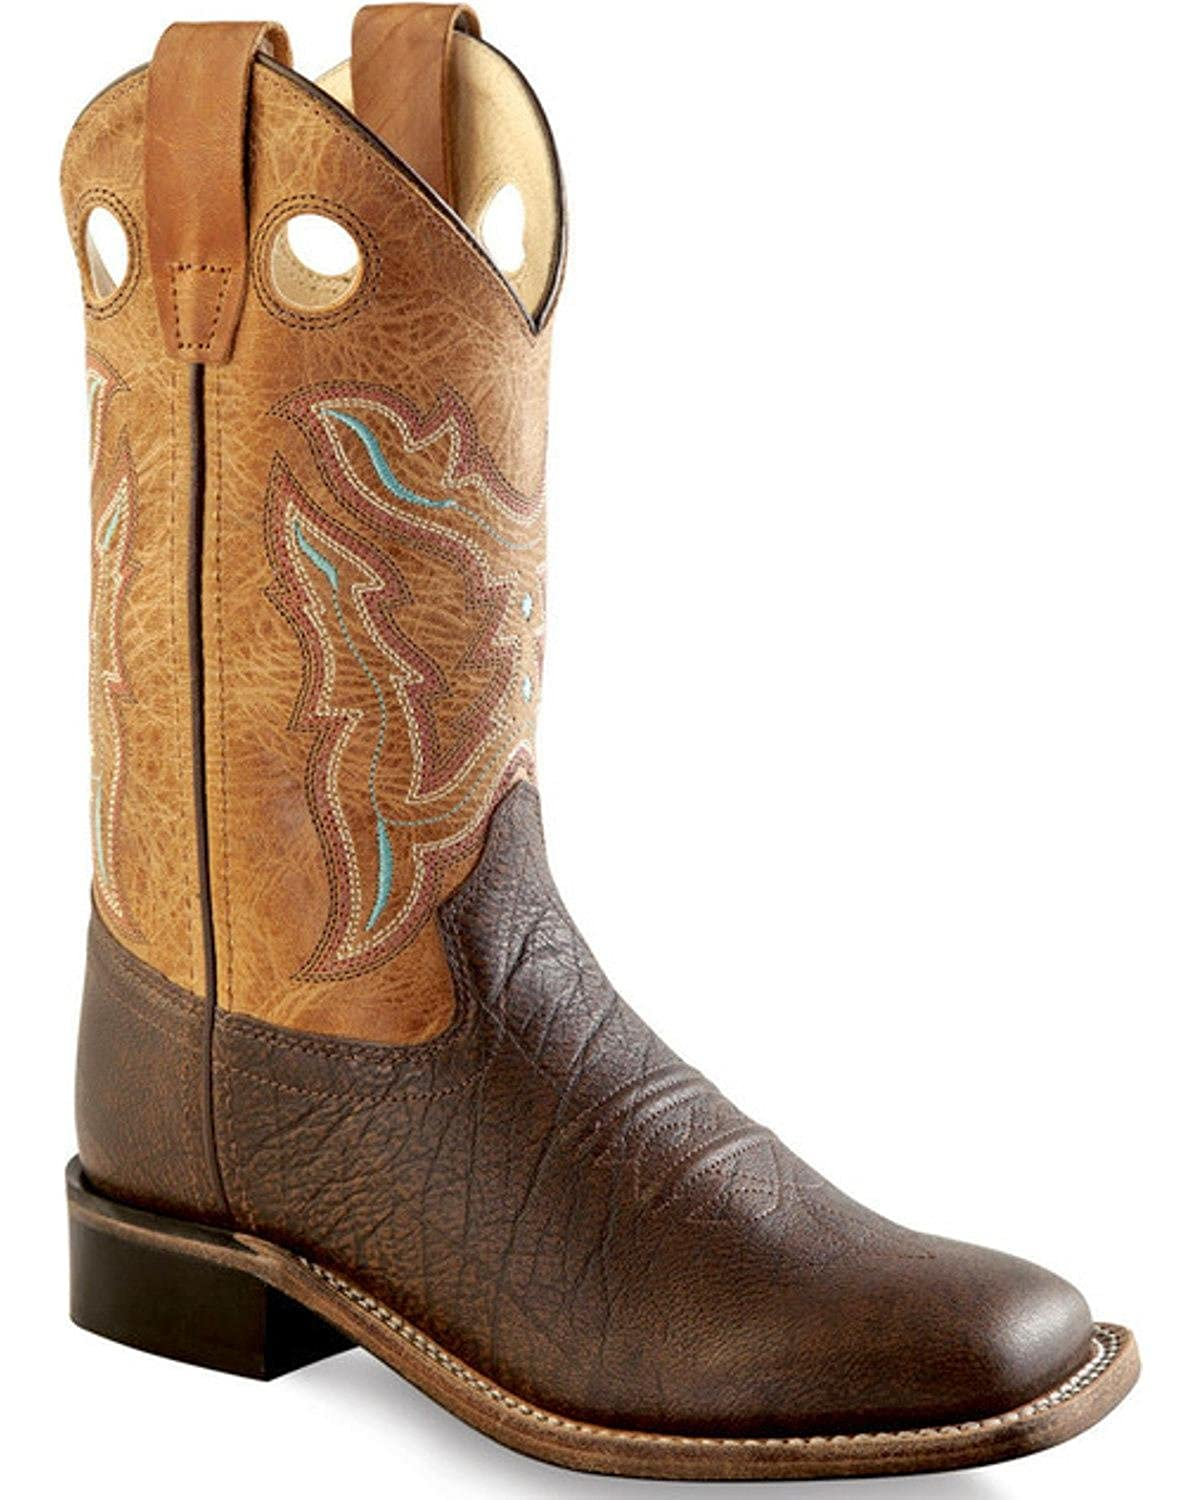 Old West Boys Cowboy Boot Square Toe BSC1819